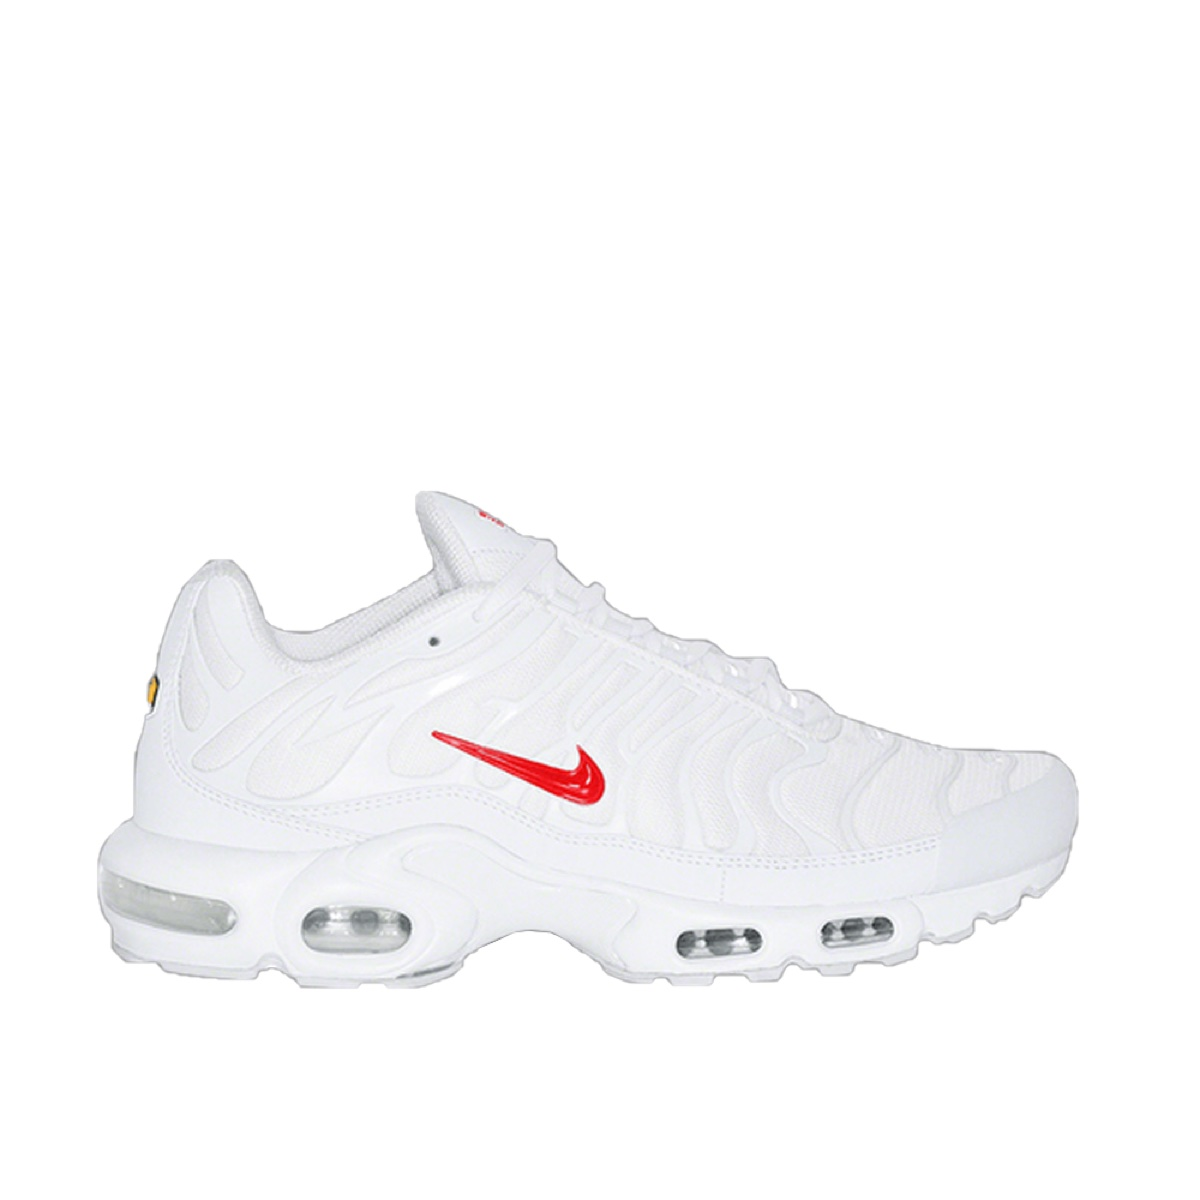 Supreme Nike Air Max Plus White